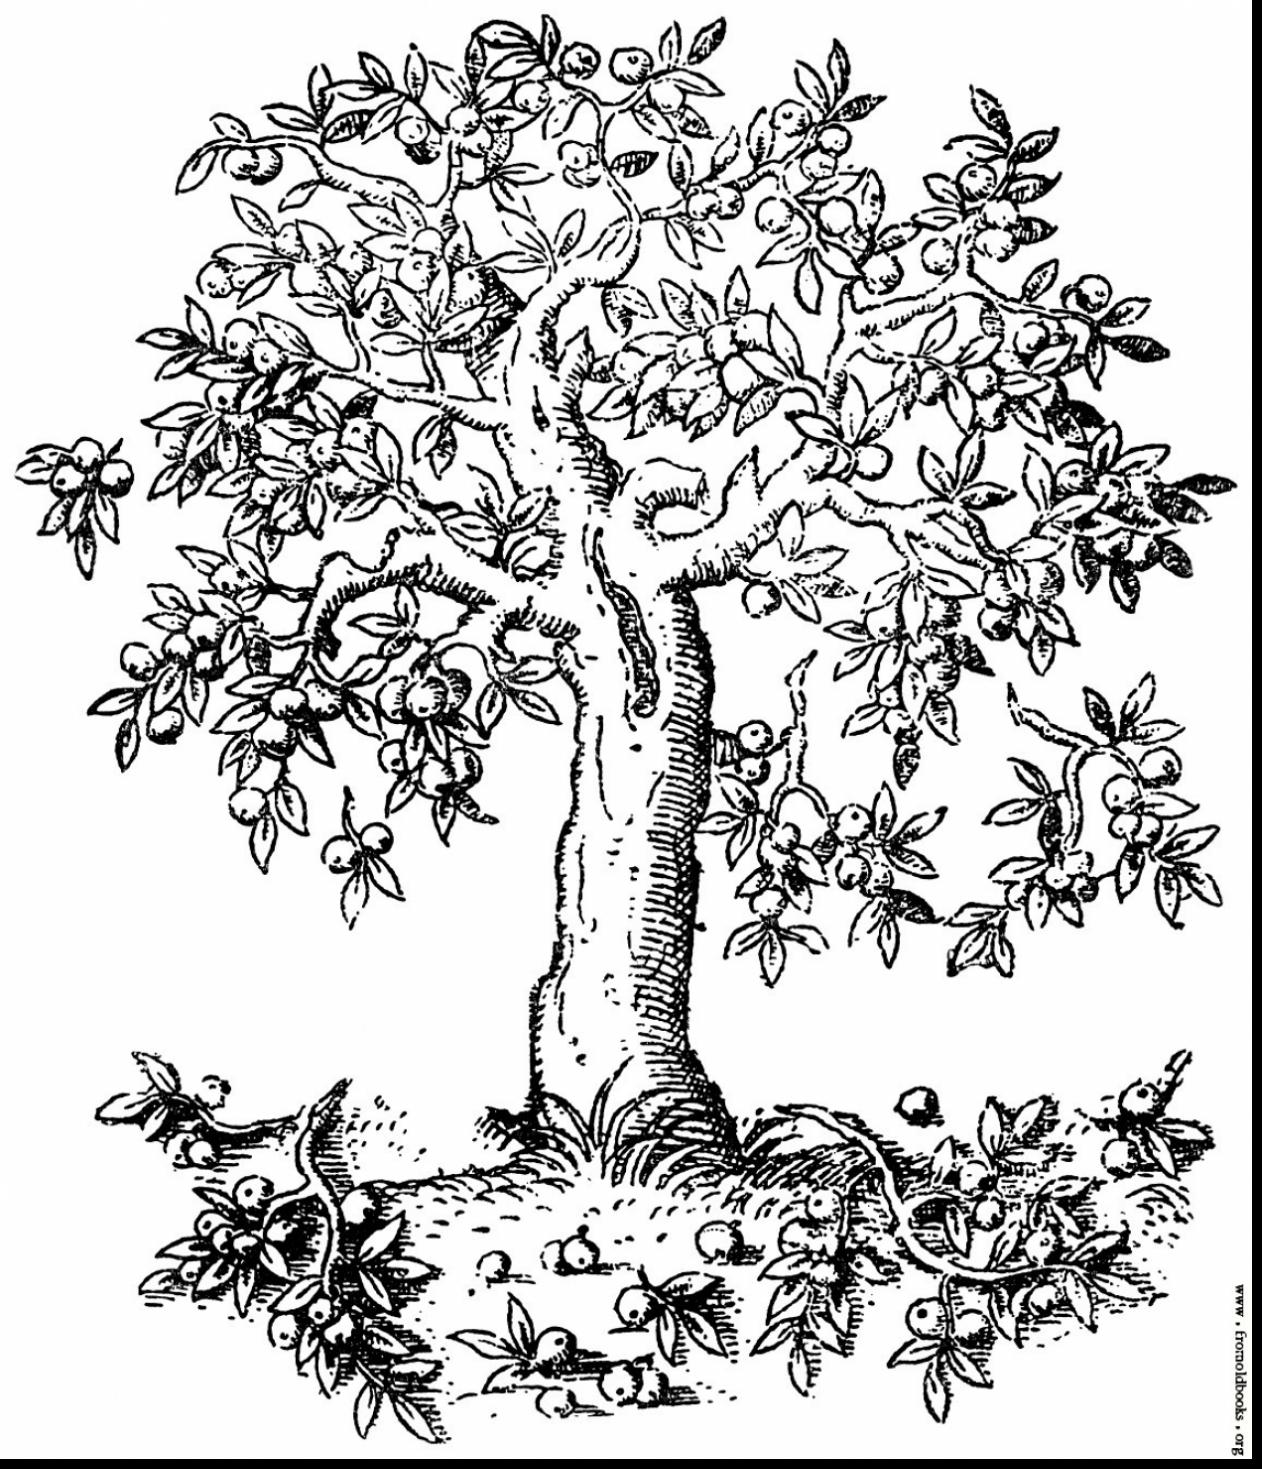 apple tree pictures to color the best free apple tree drawing images download from apple color to tree pictures